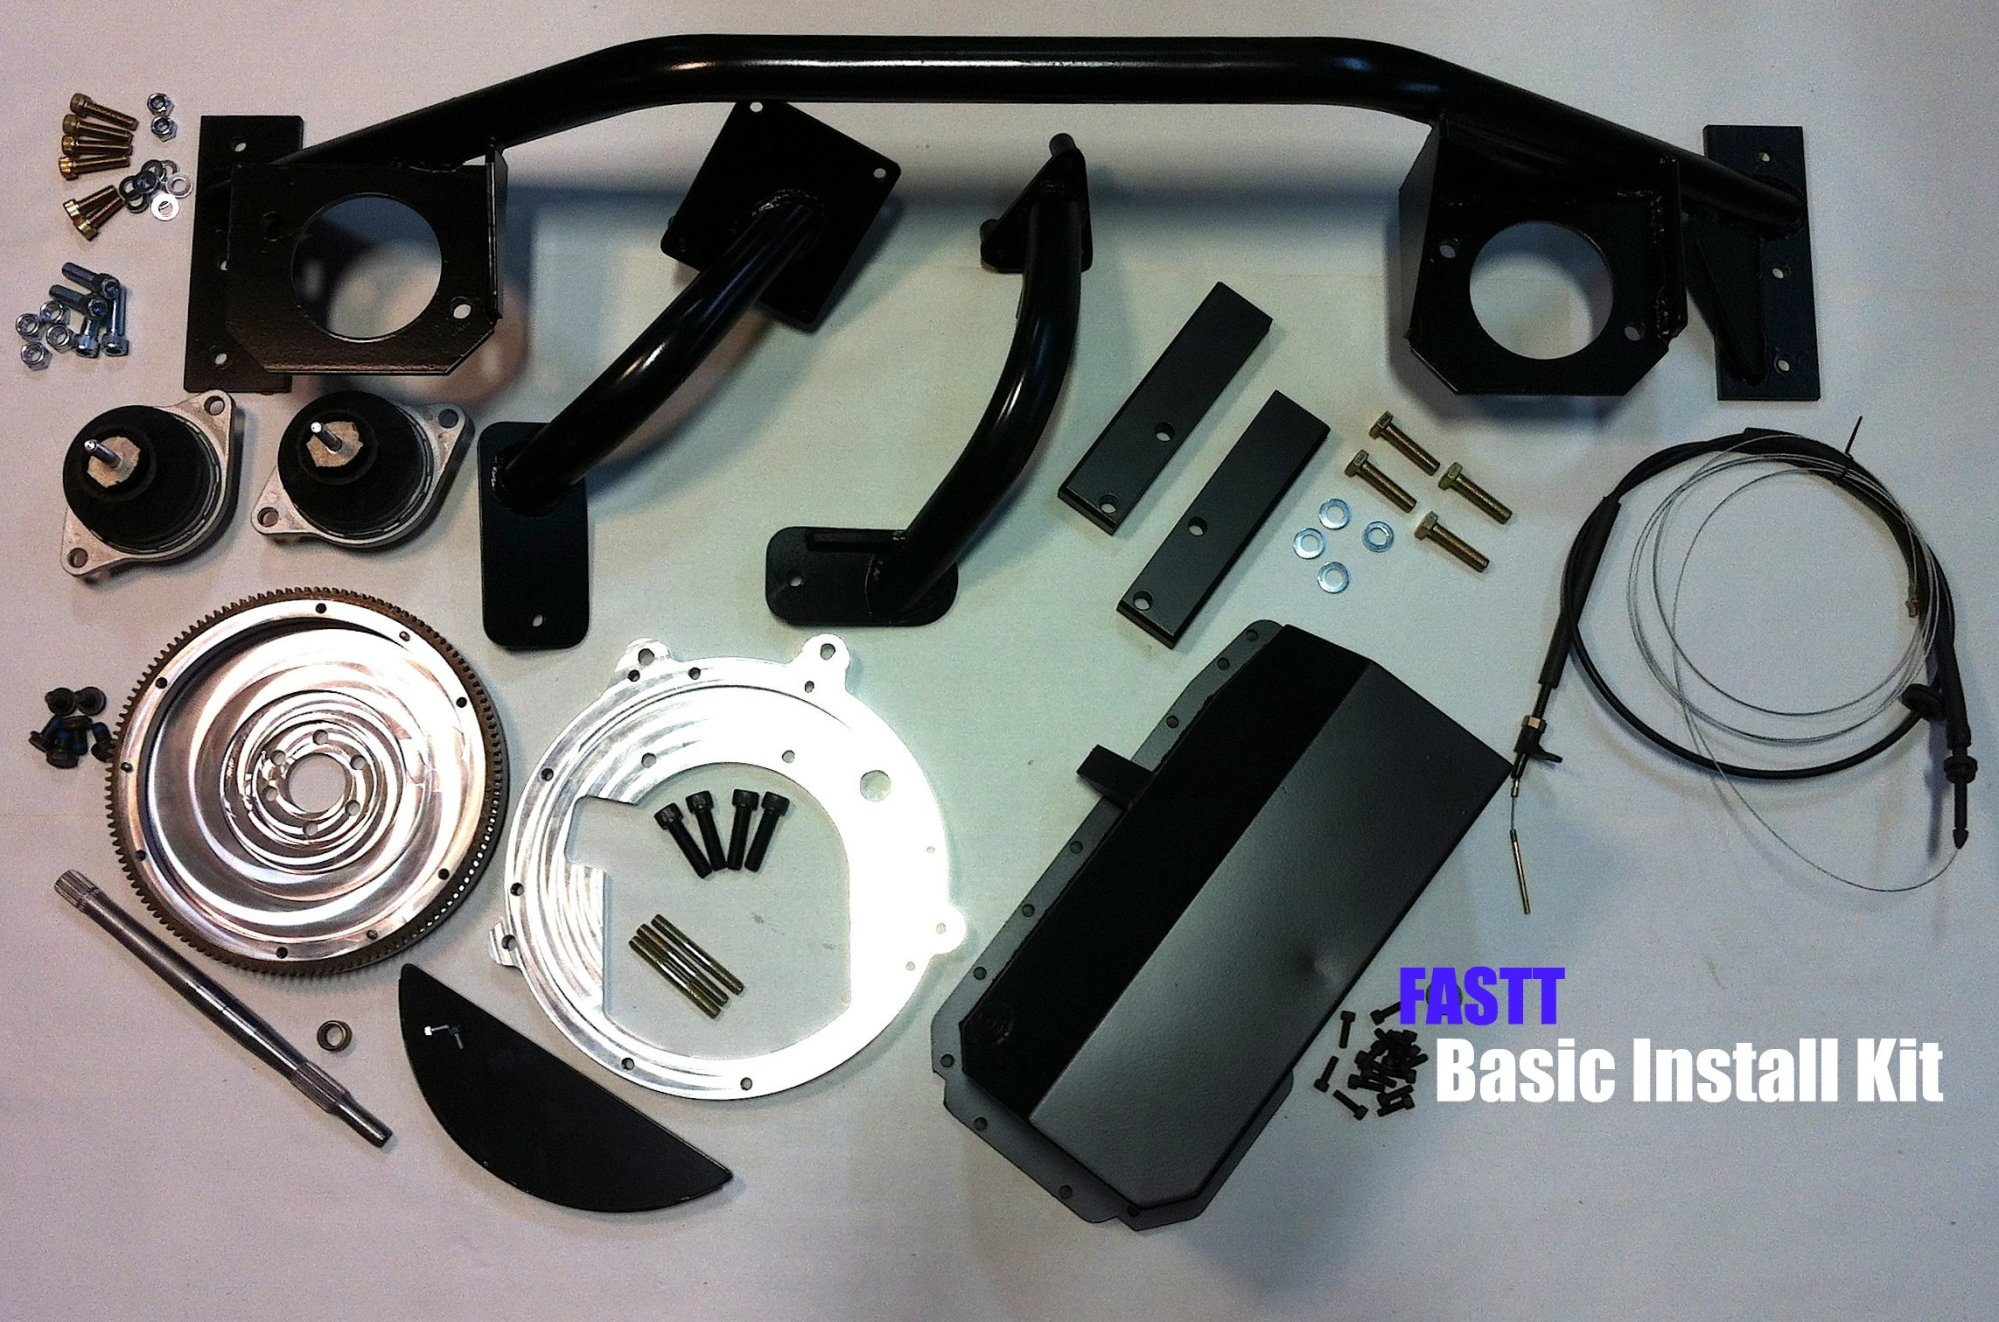 hight resolution of  engine conversion basic install kit view full sized image